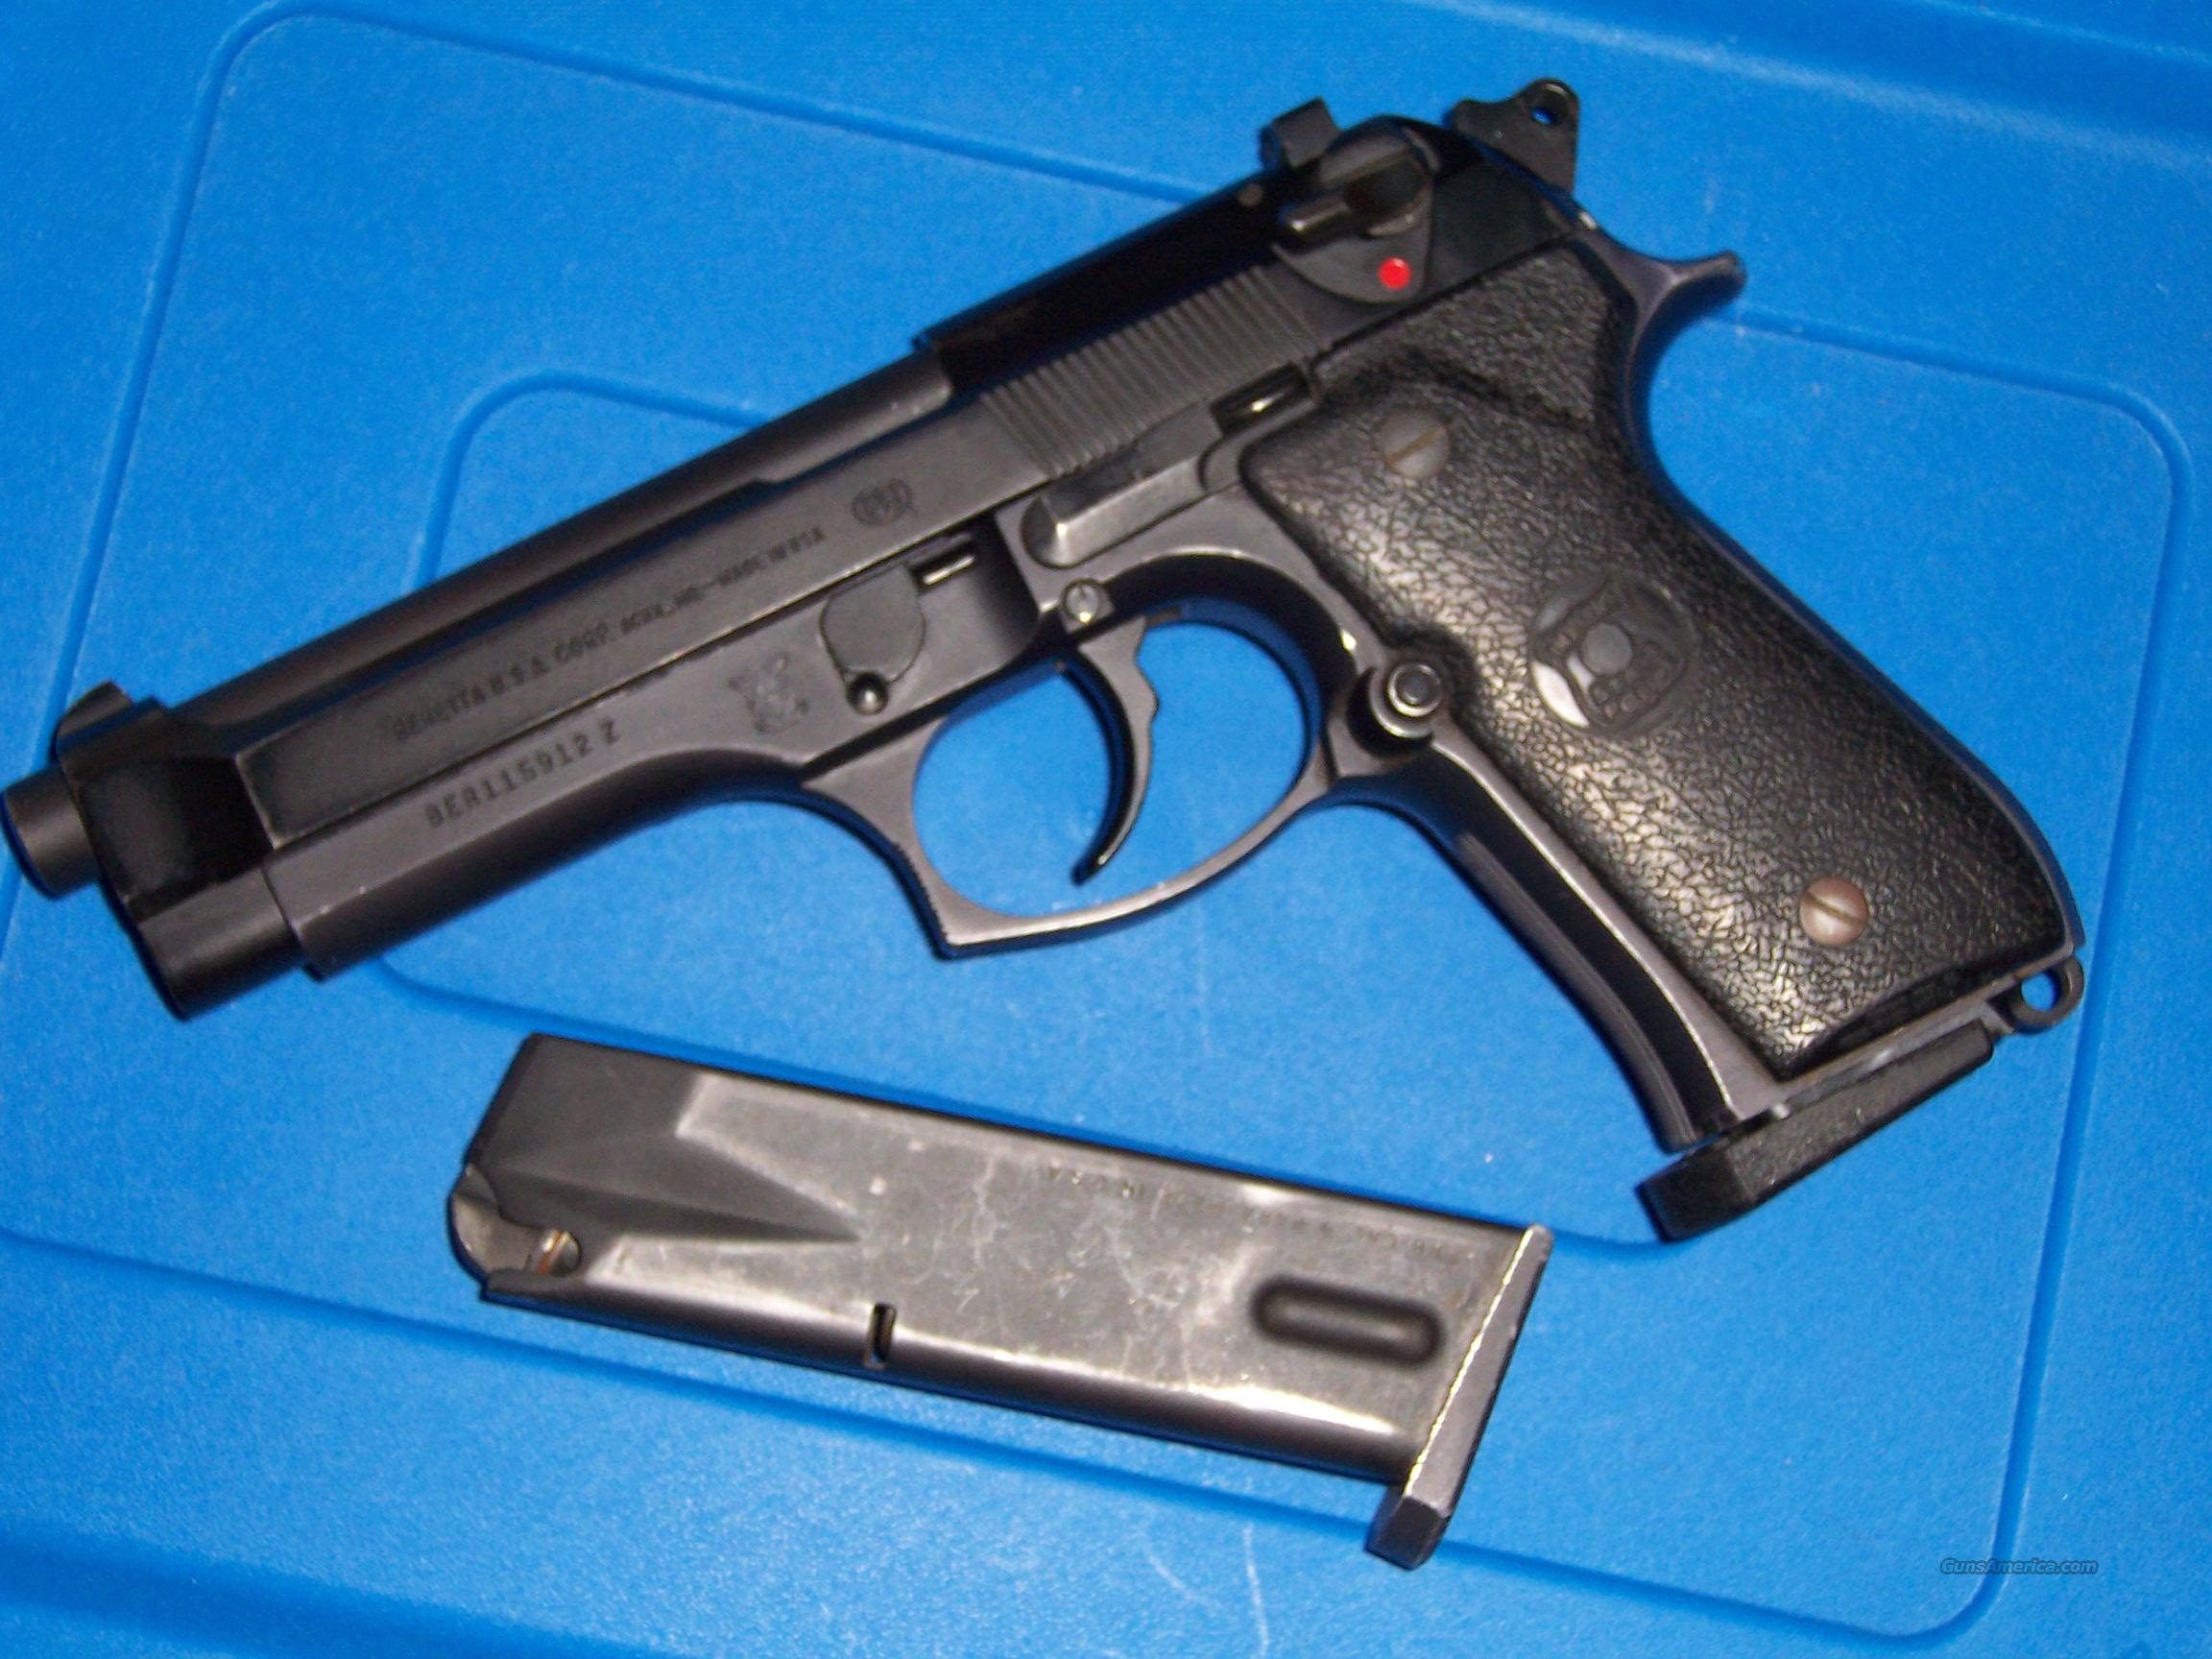 BERETTA 92G OFFICIAL LAW ENFORCEMENT PISTOL  Guns > Pistols > Beretta Pistols > Model 92 Series